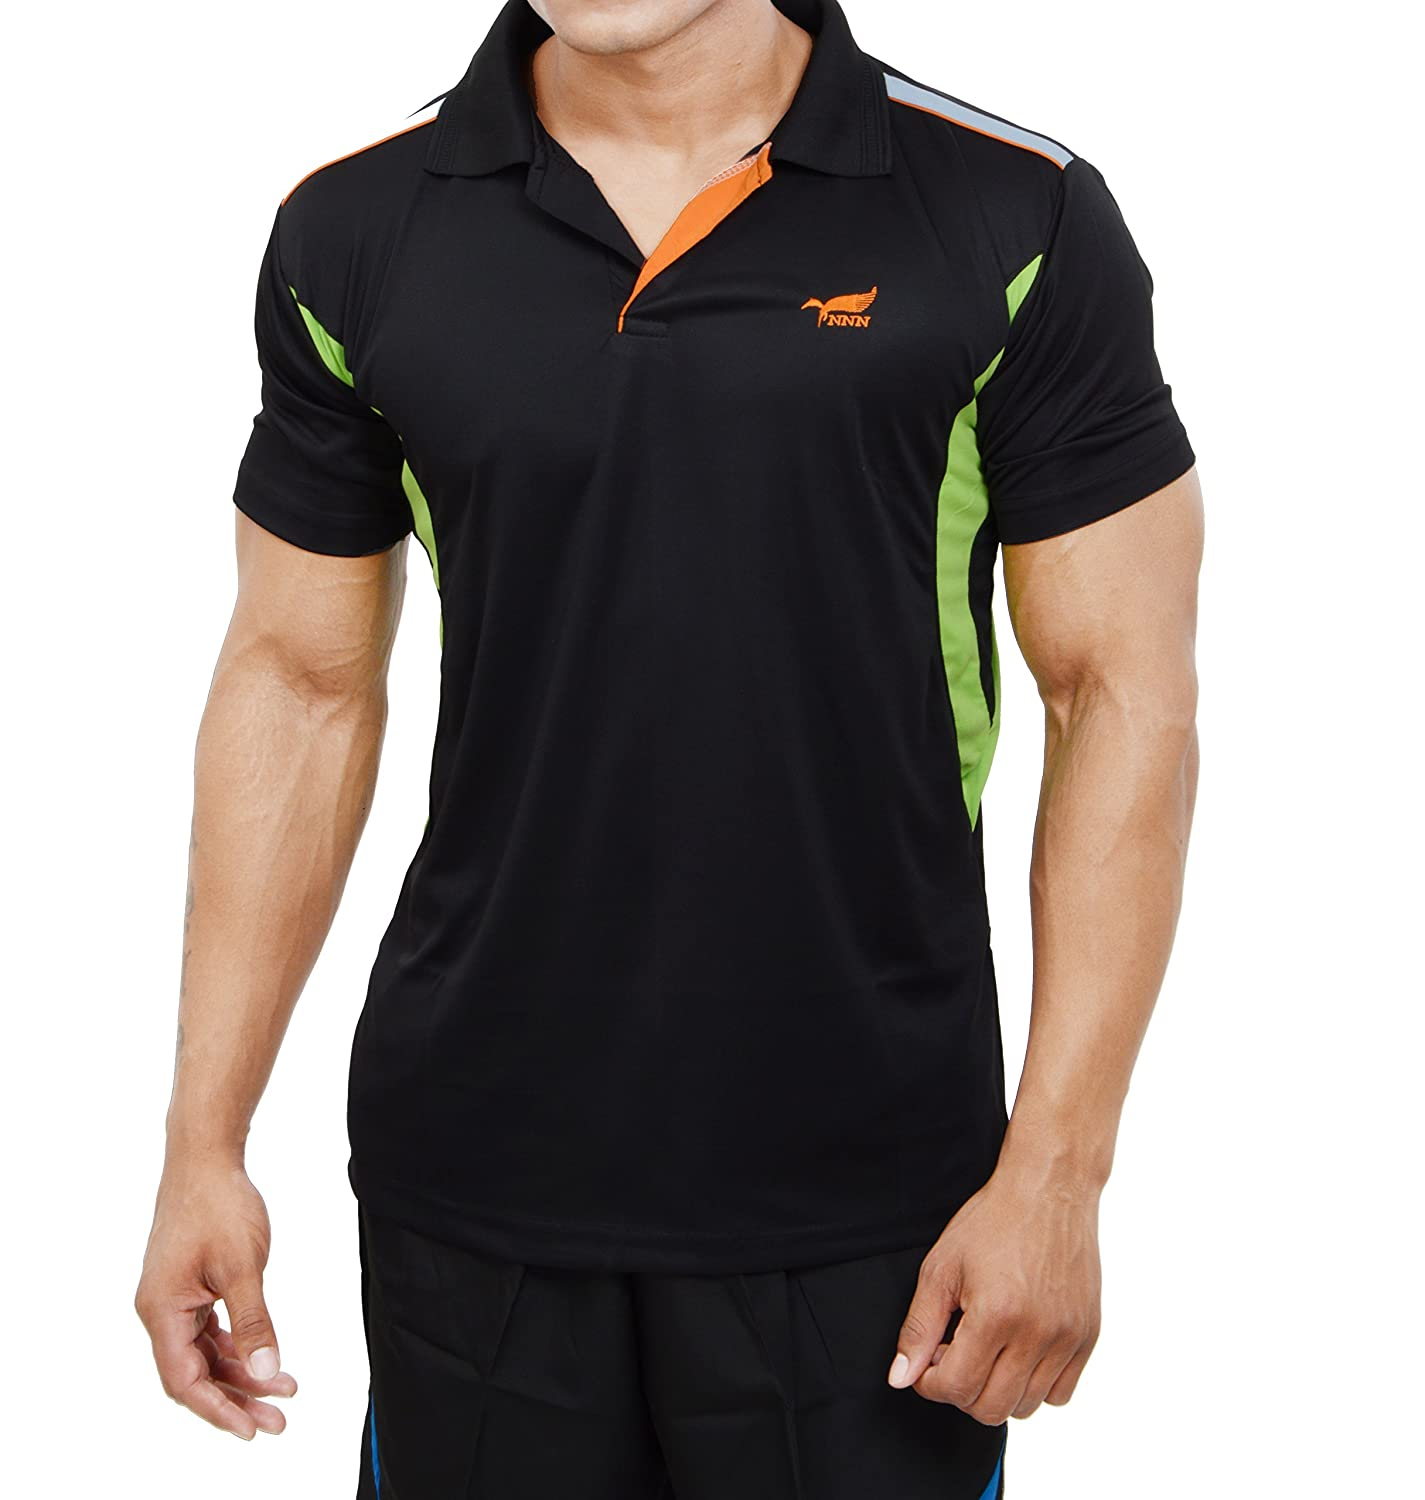 Black t shirt sports - Nnn Men S Polyester Dry Fit Sports T Shirt Amazon In Clothing Accessories